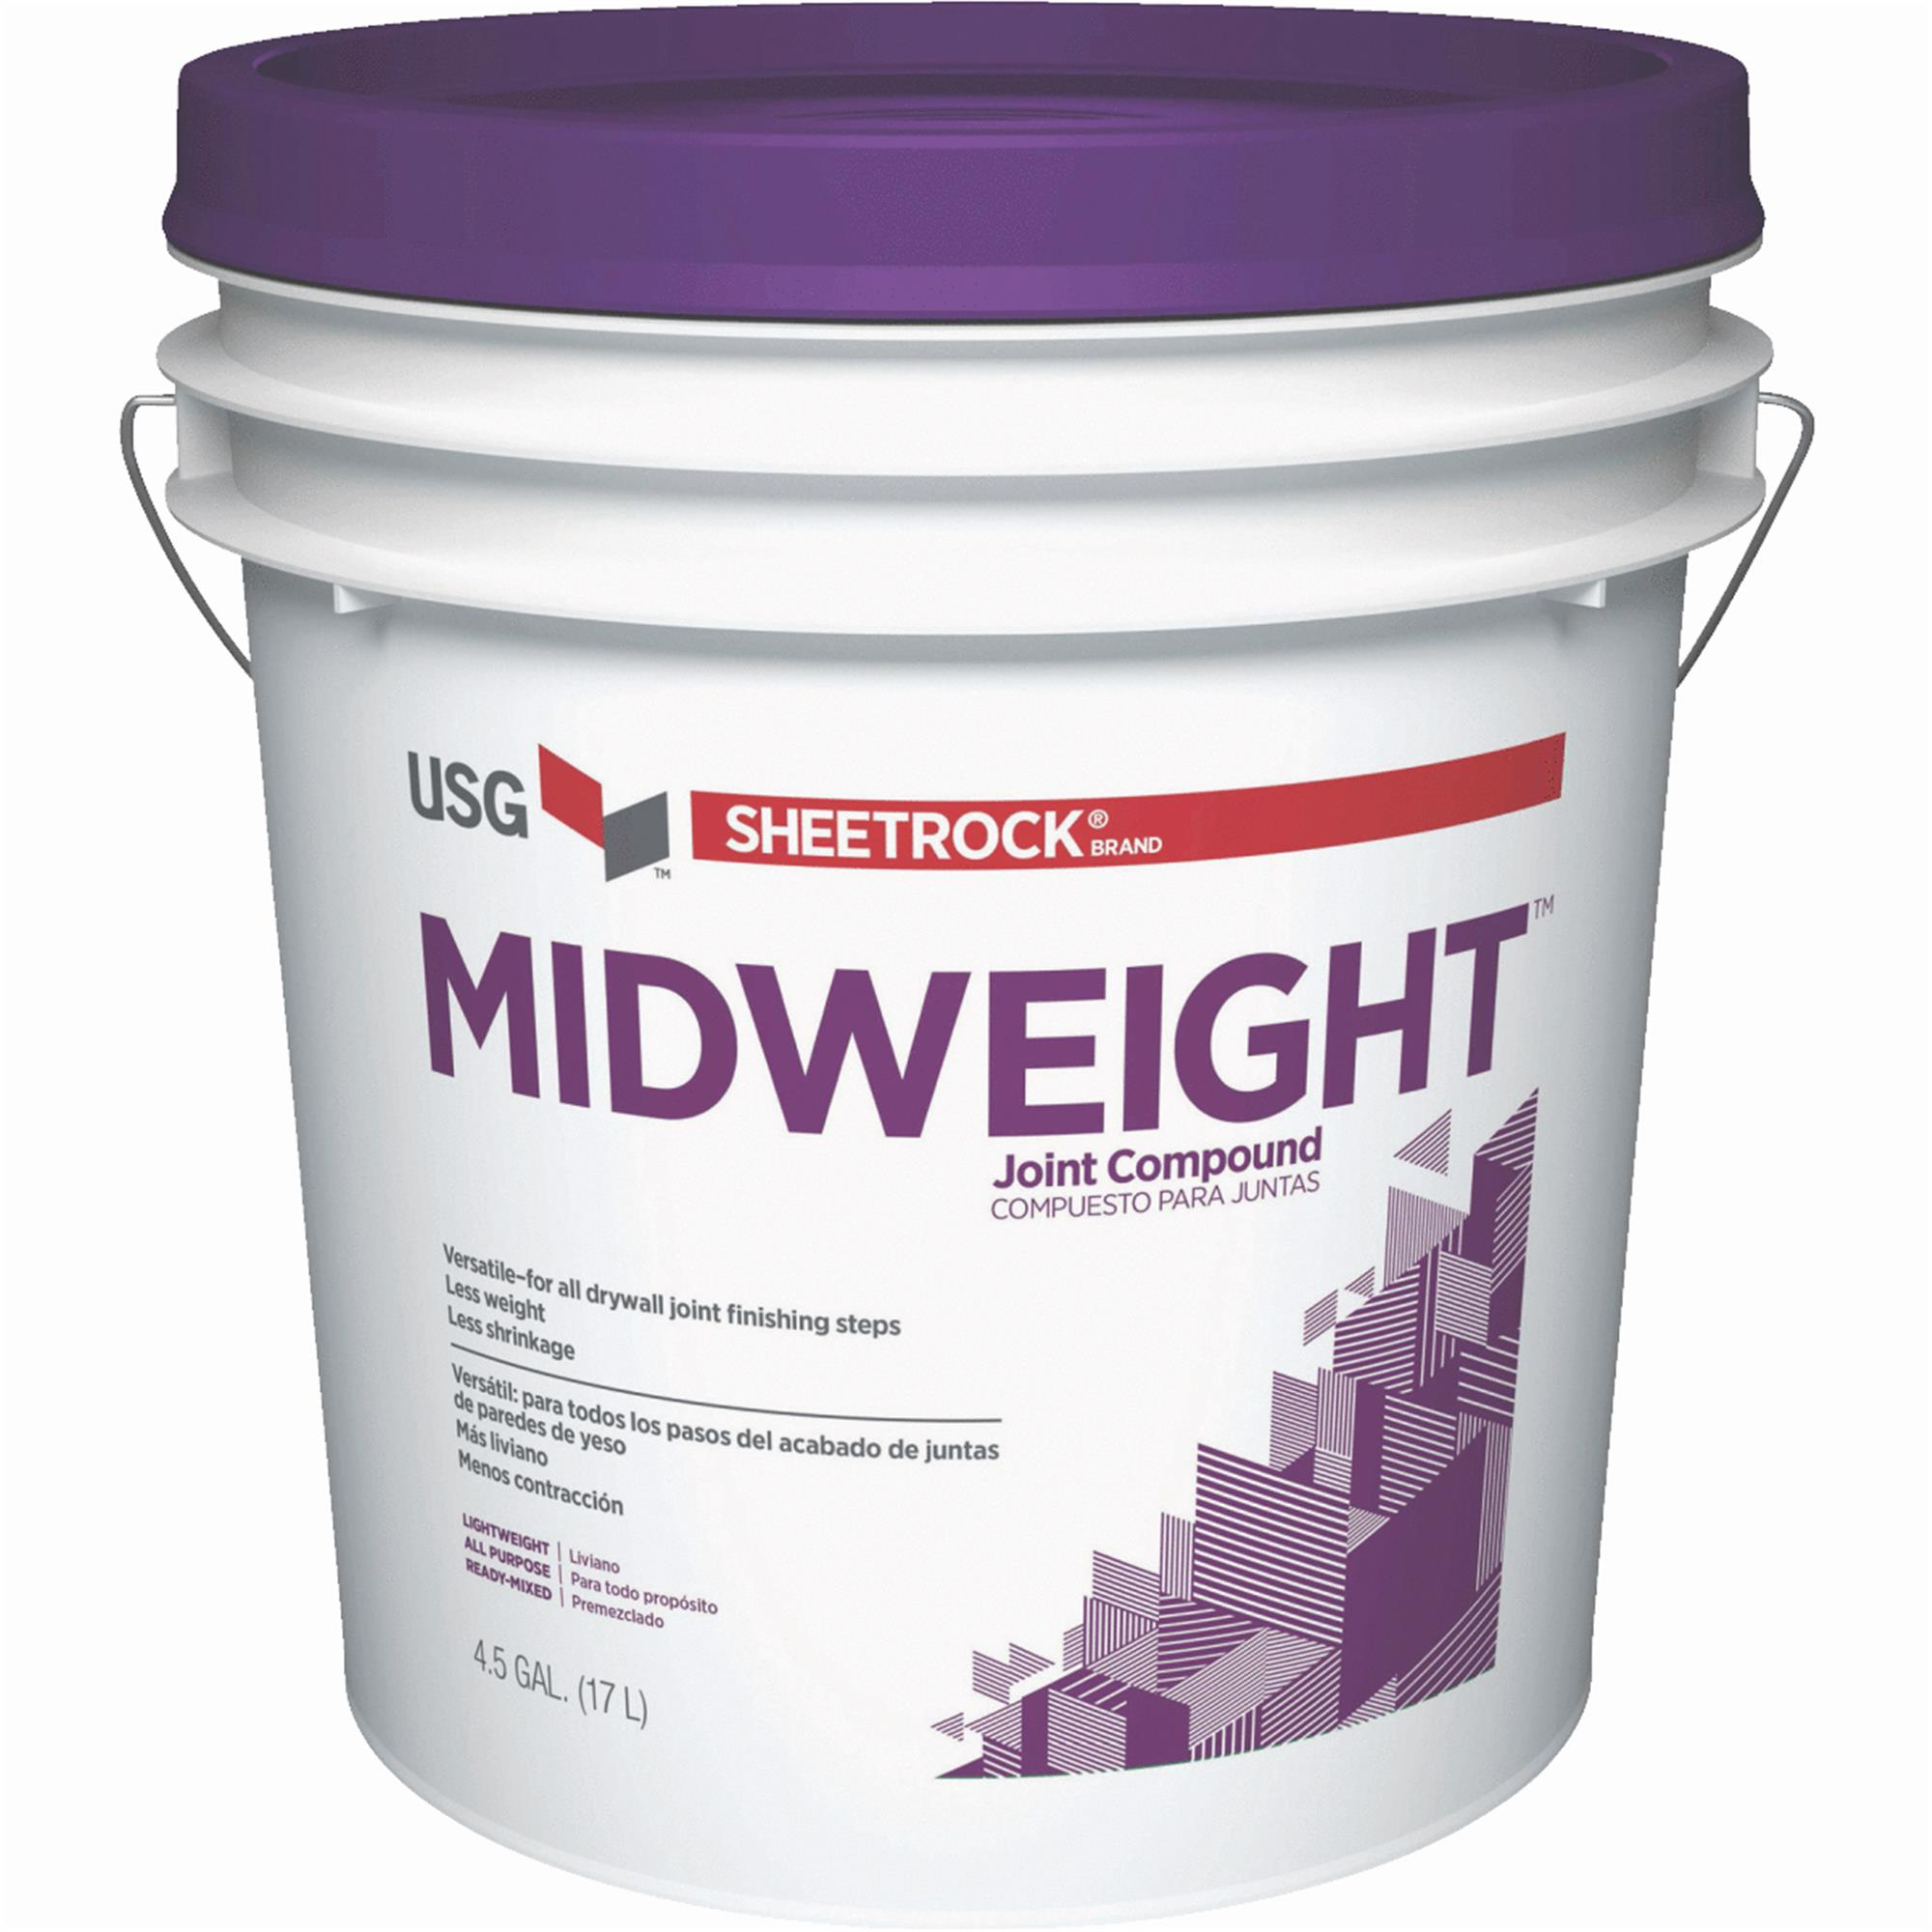 Sheetrock Midweight Pre-Mixed All-Purpose Drywall Joint Compound